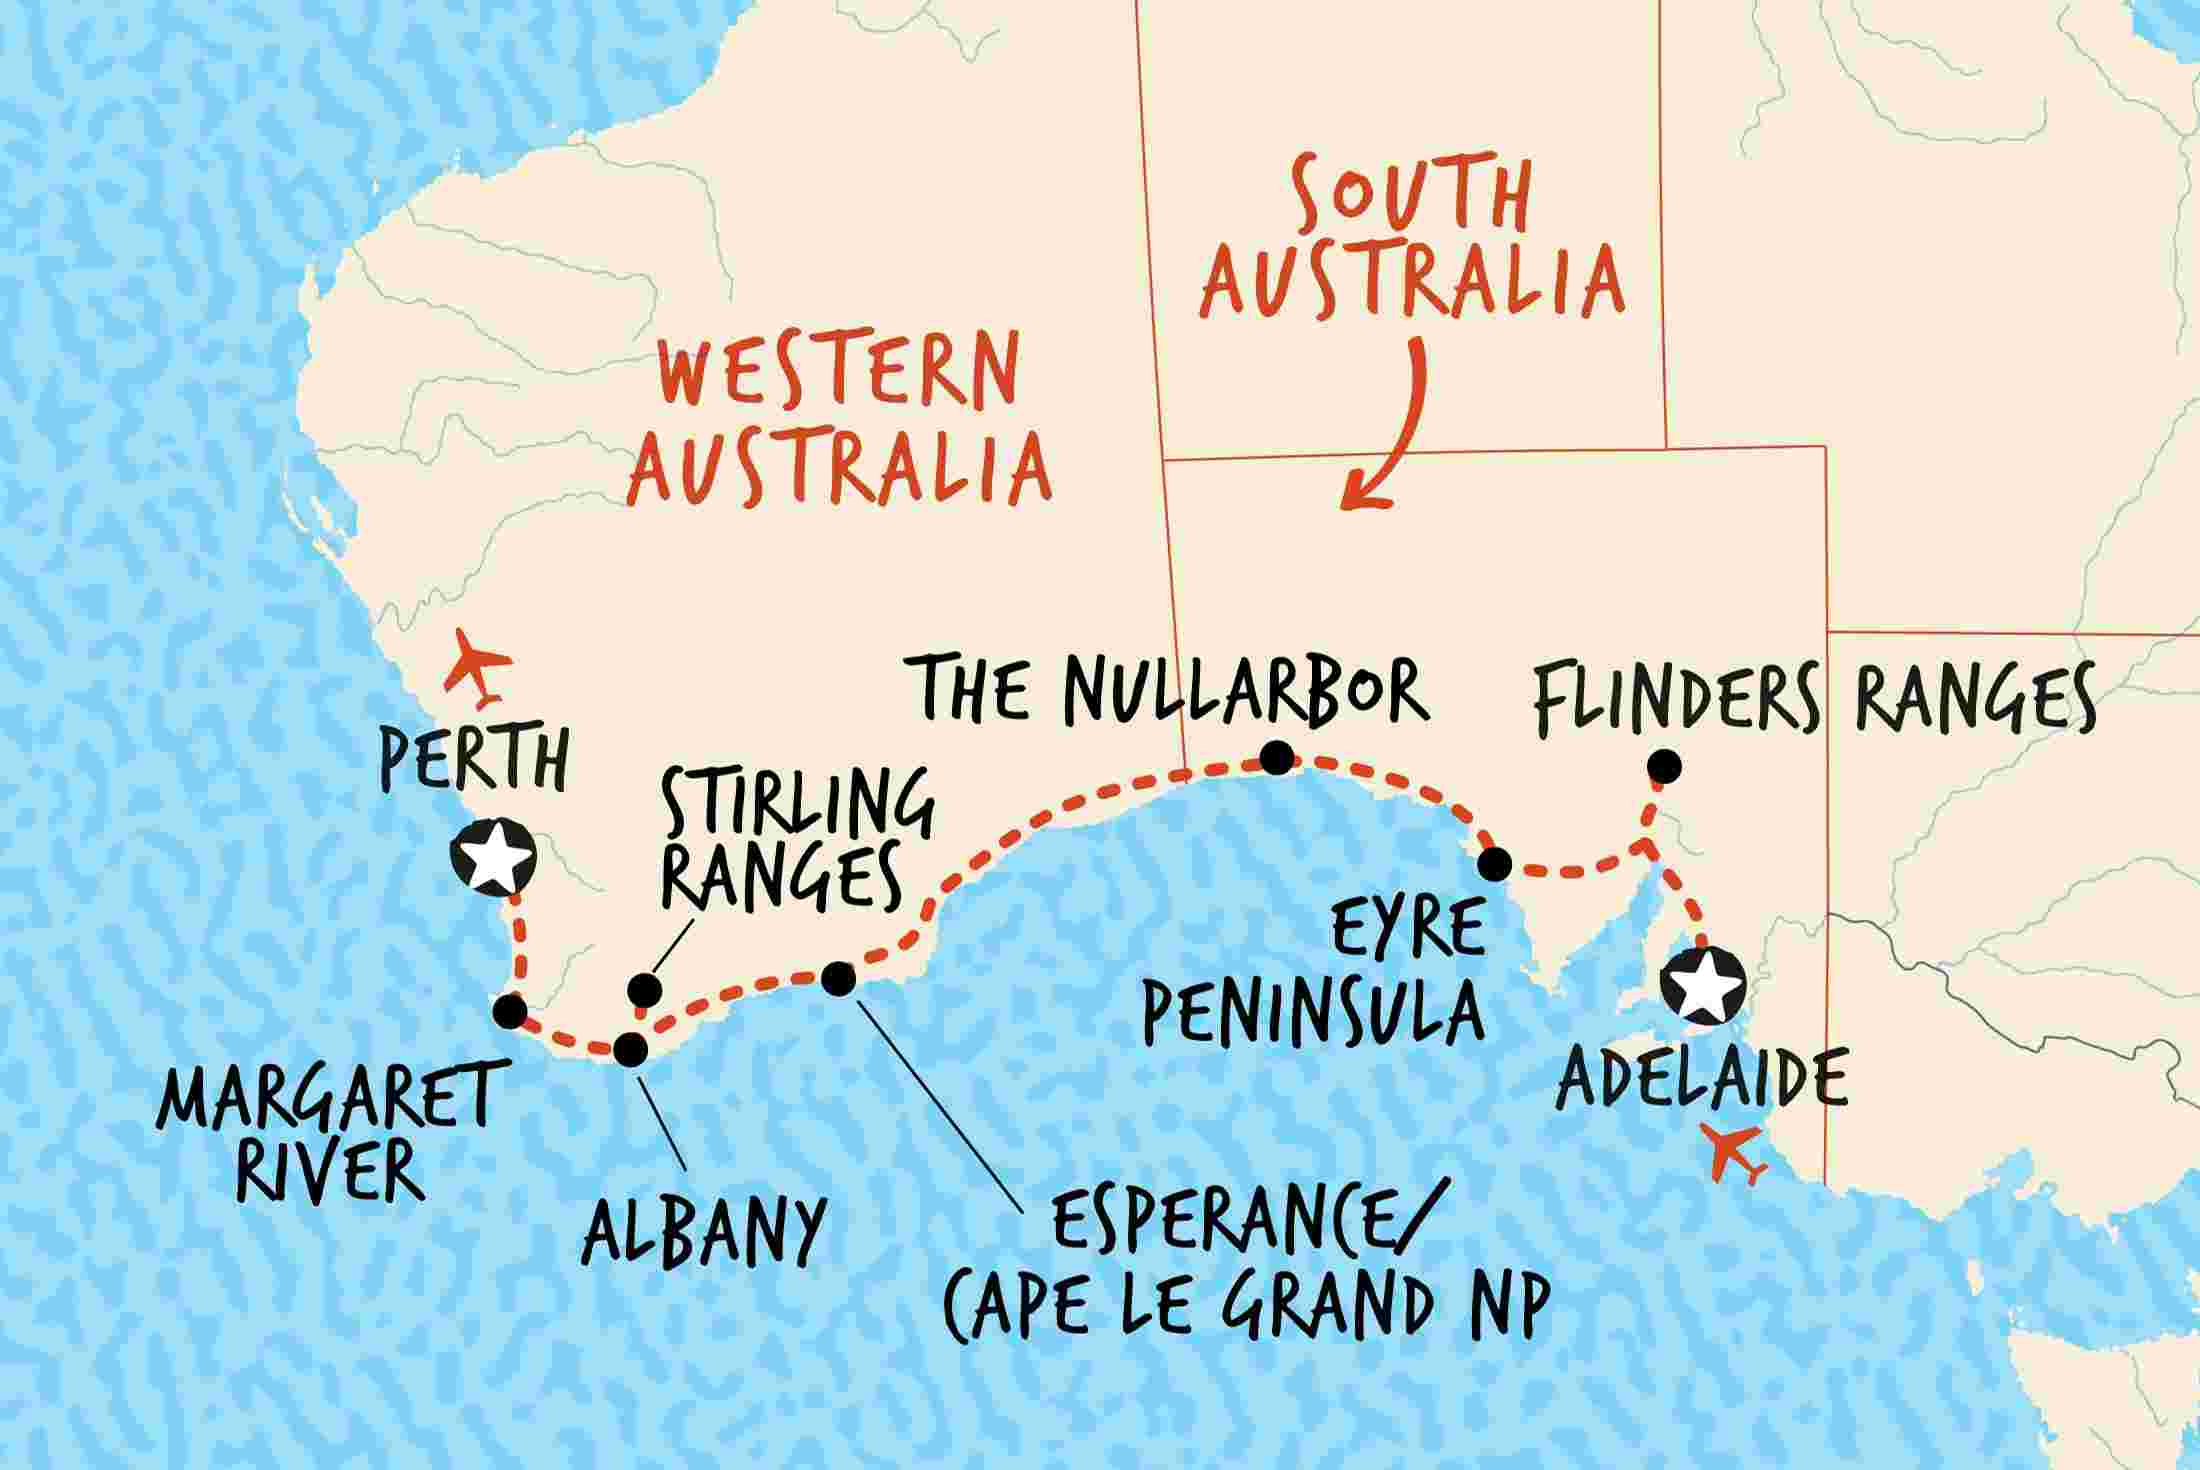 Southwest Australia Map.Western Australia Tours Travel Adventure Tours